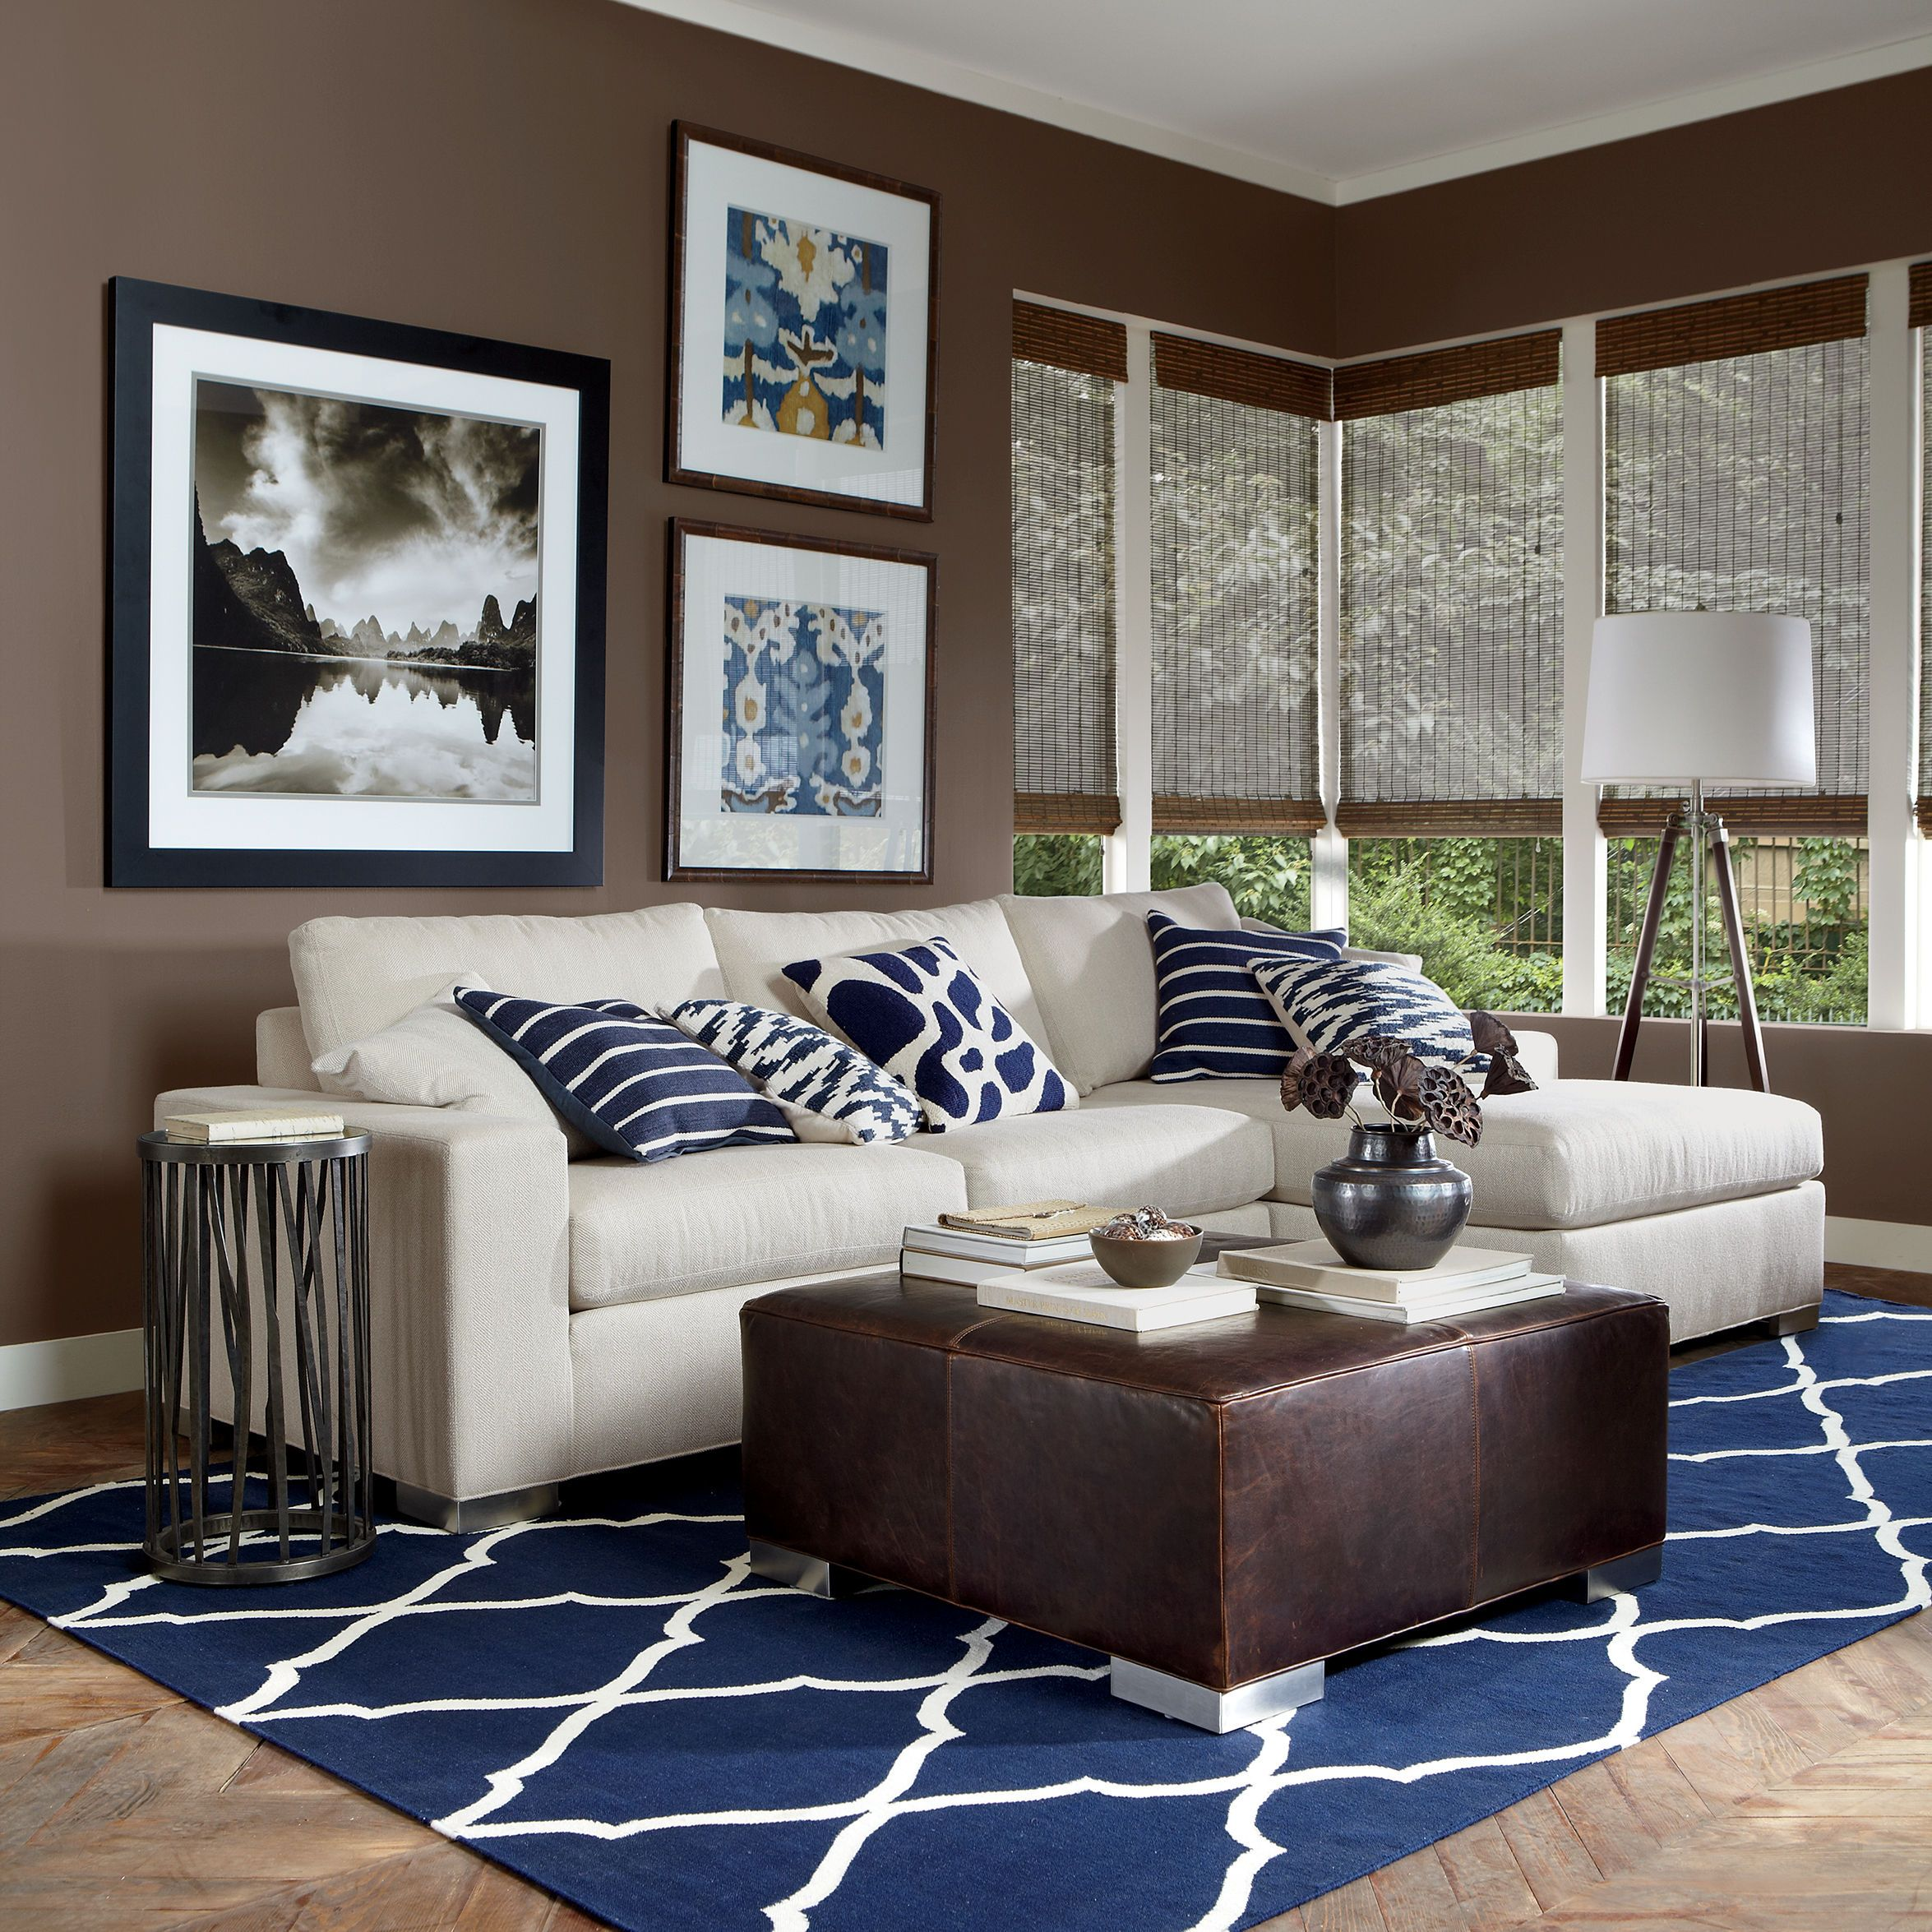 Interior Design Trends: Blue. Ethan Allen's take on blue decor. Ethan Allen living room. Blue living rooms.